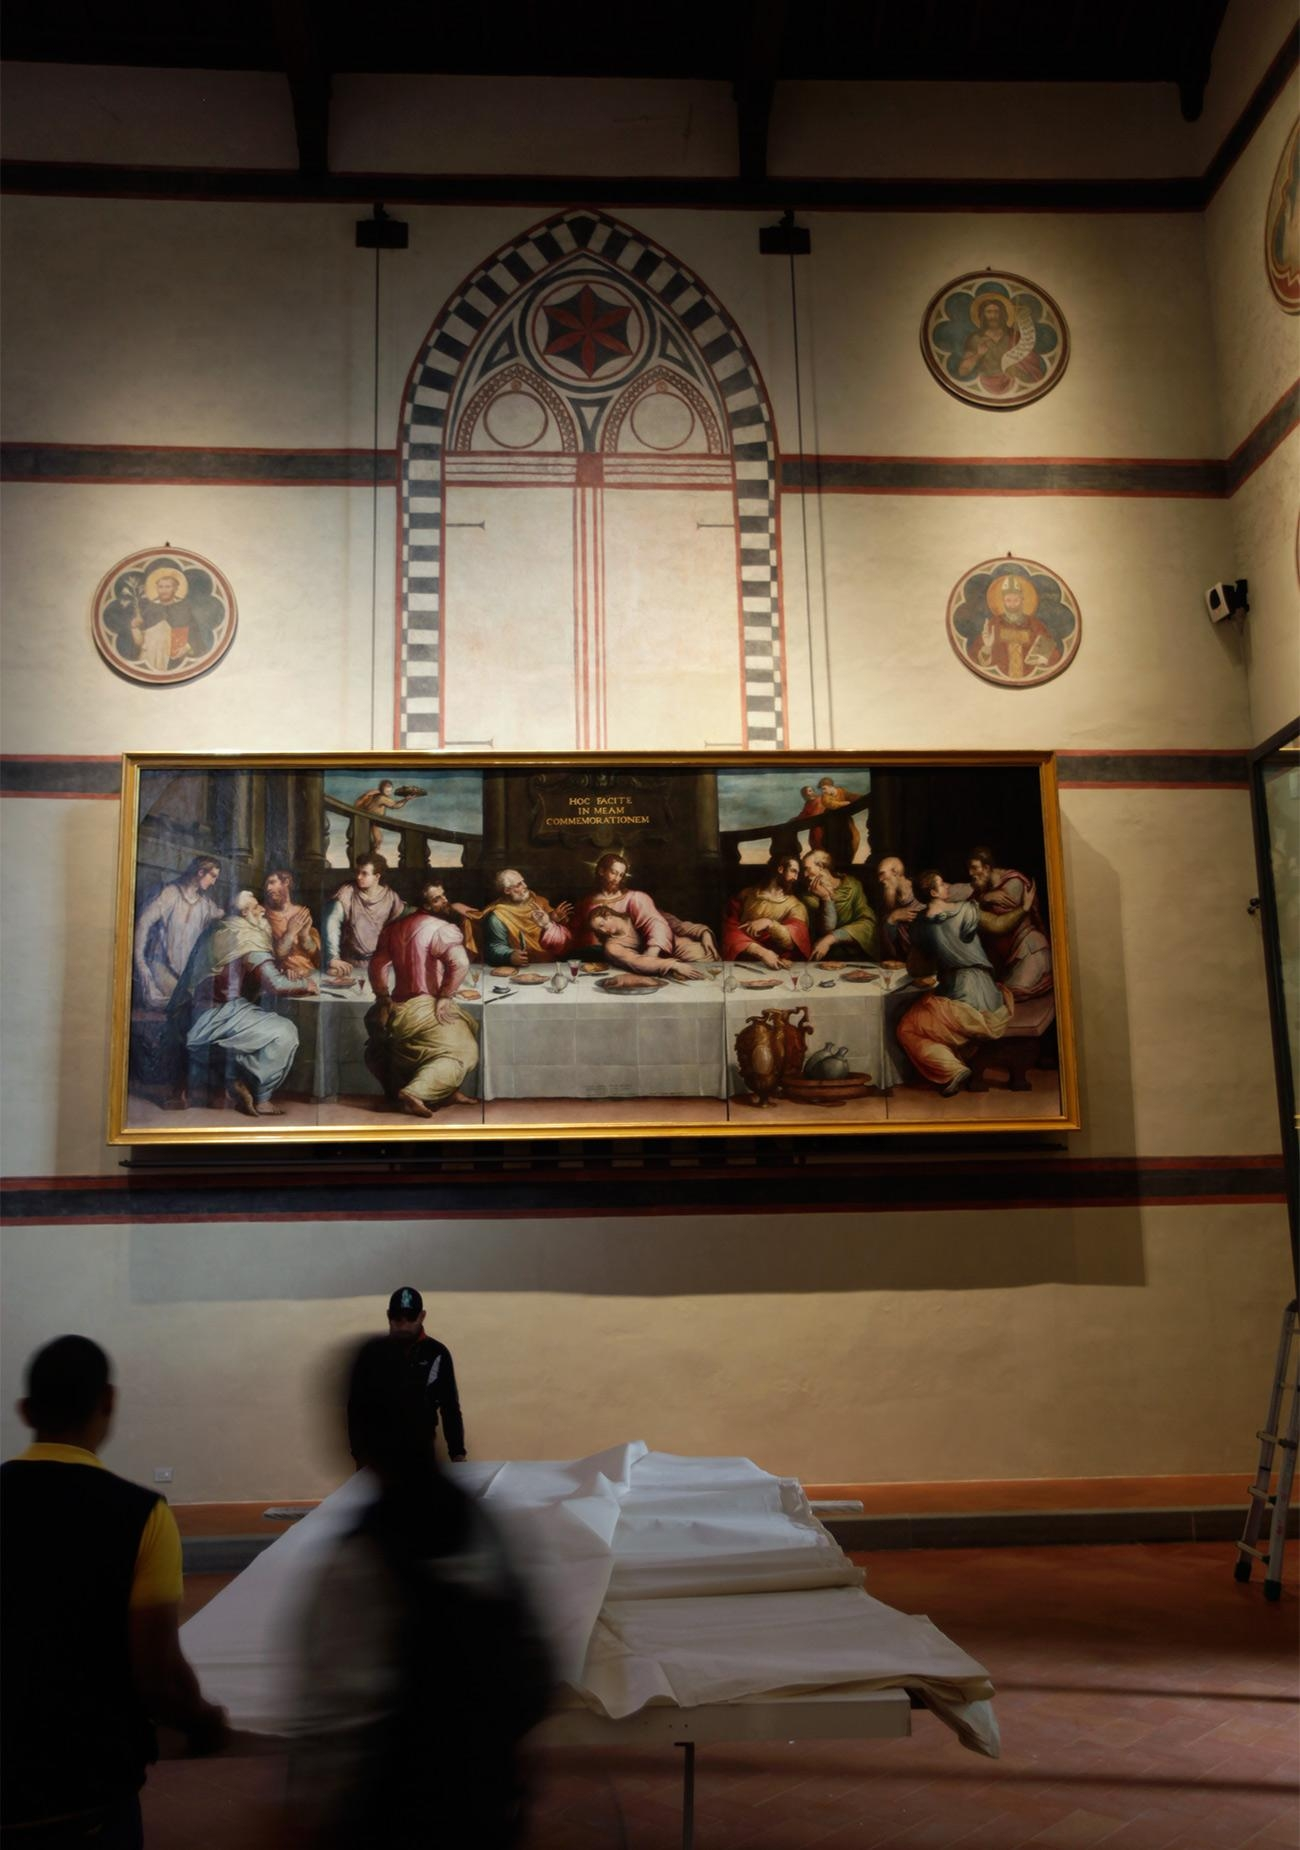 50 Years After The Flood, A Renaissance Painting Restored | The For The Last Supper Wall Art (Image 1 of 20)